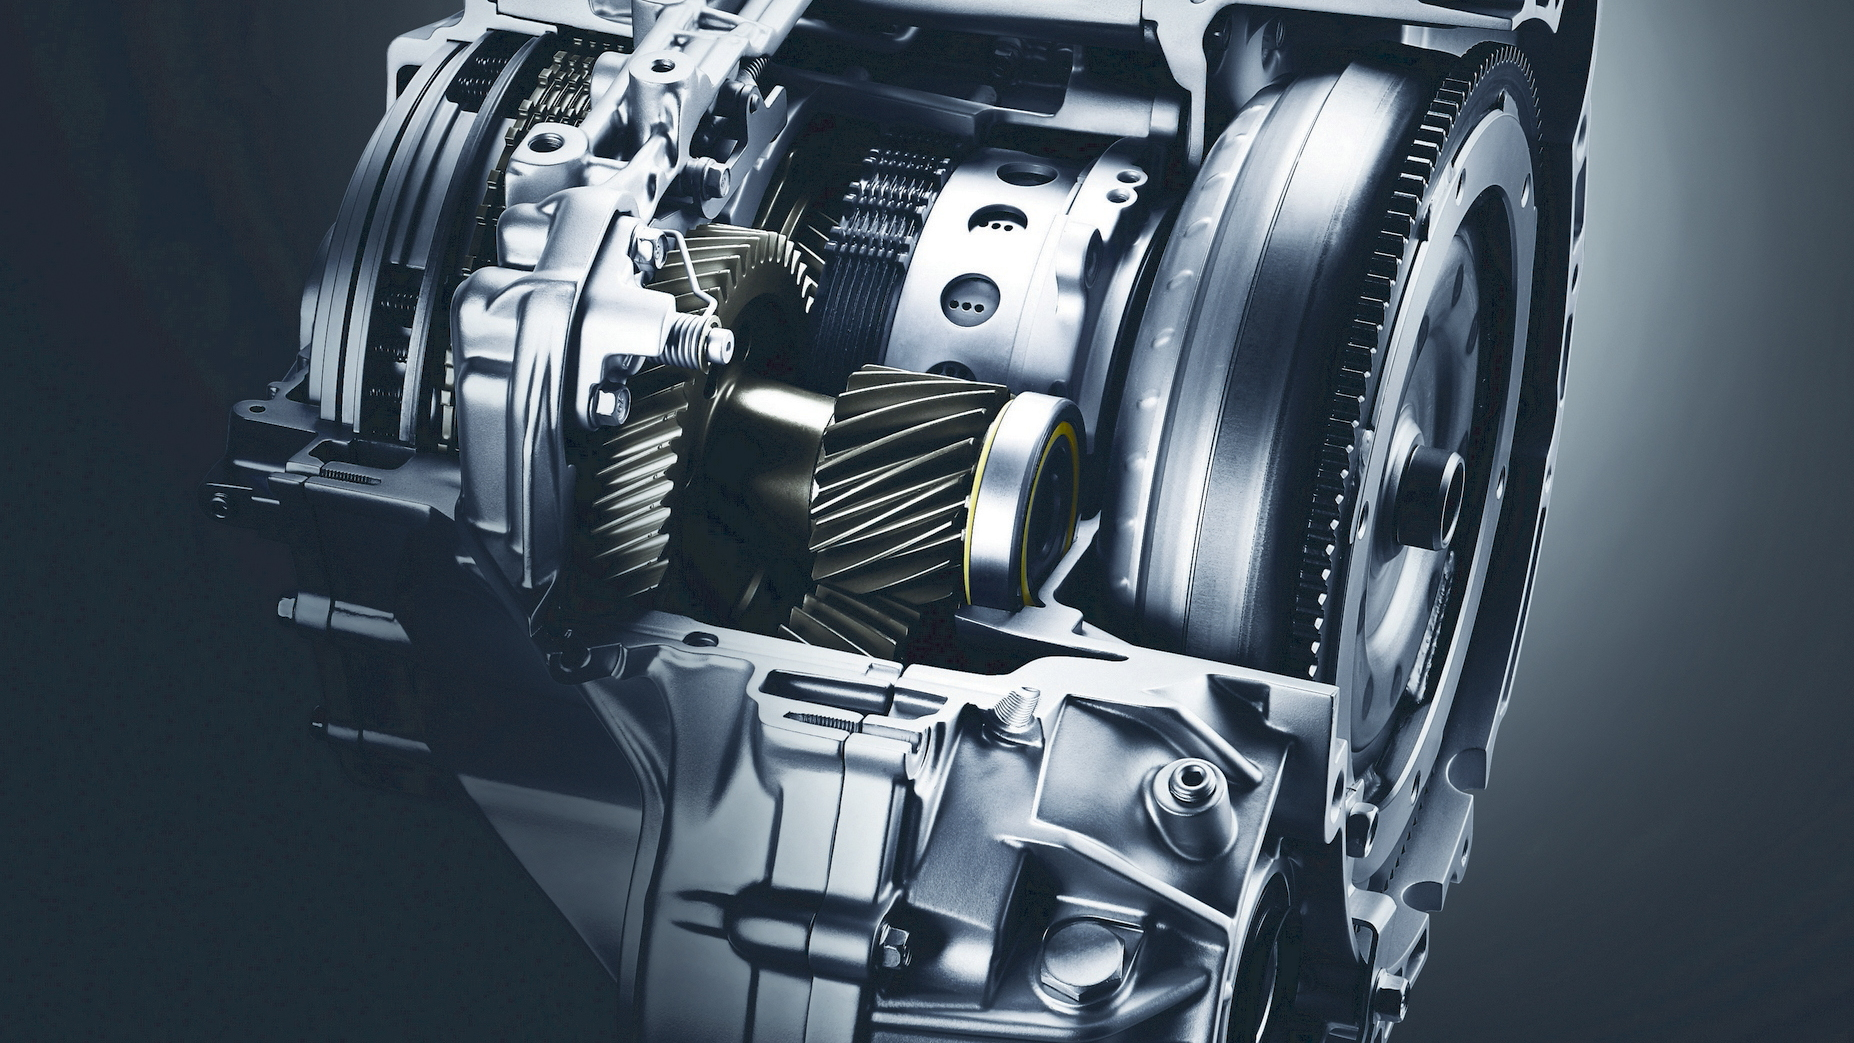 Kia's new 8-speed automatic transmission